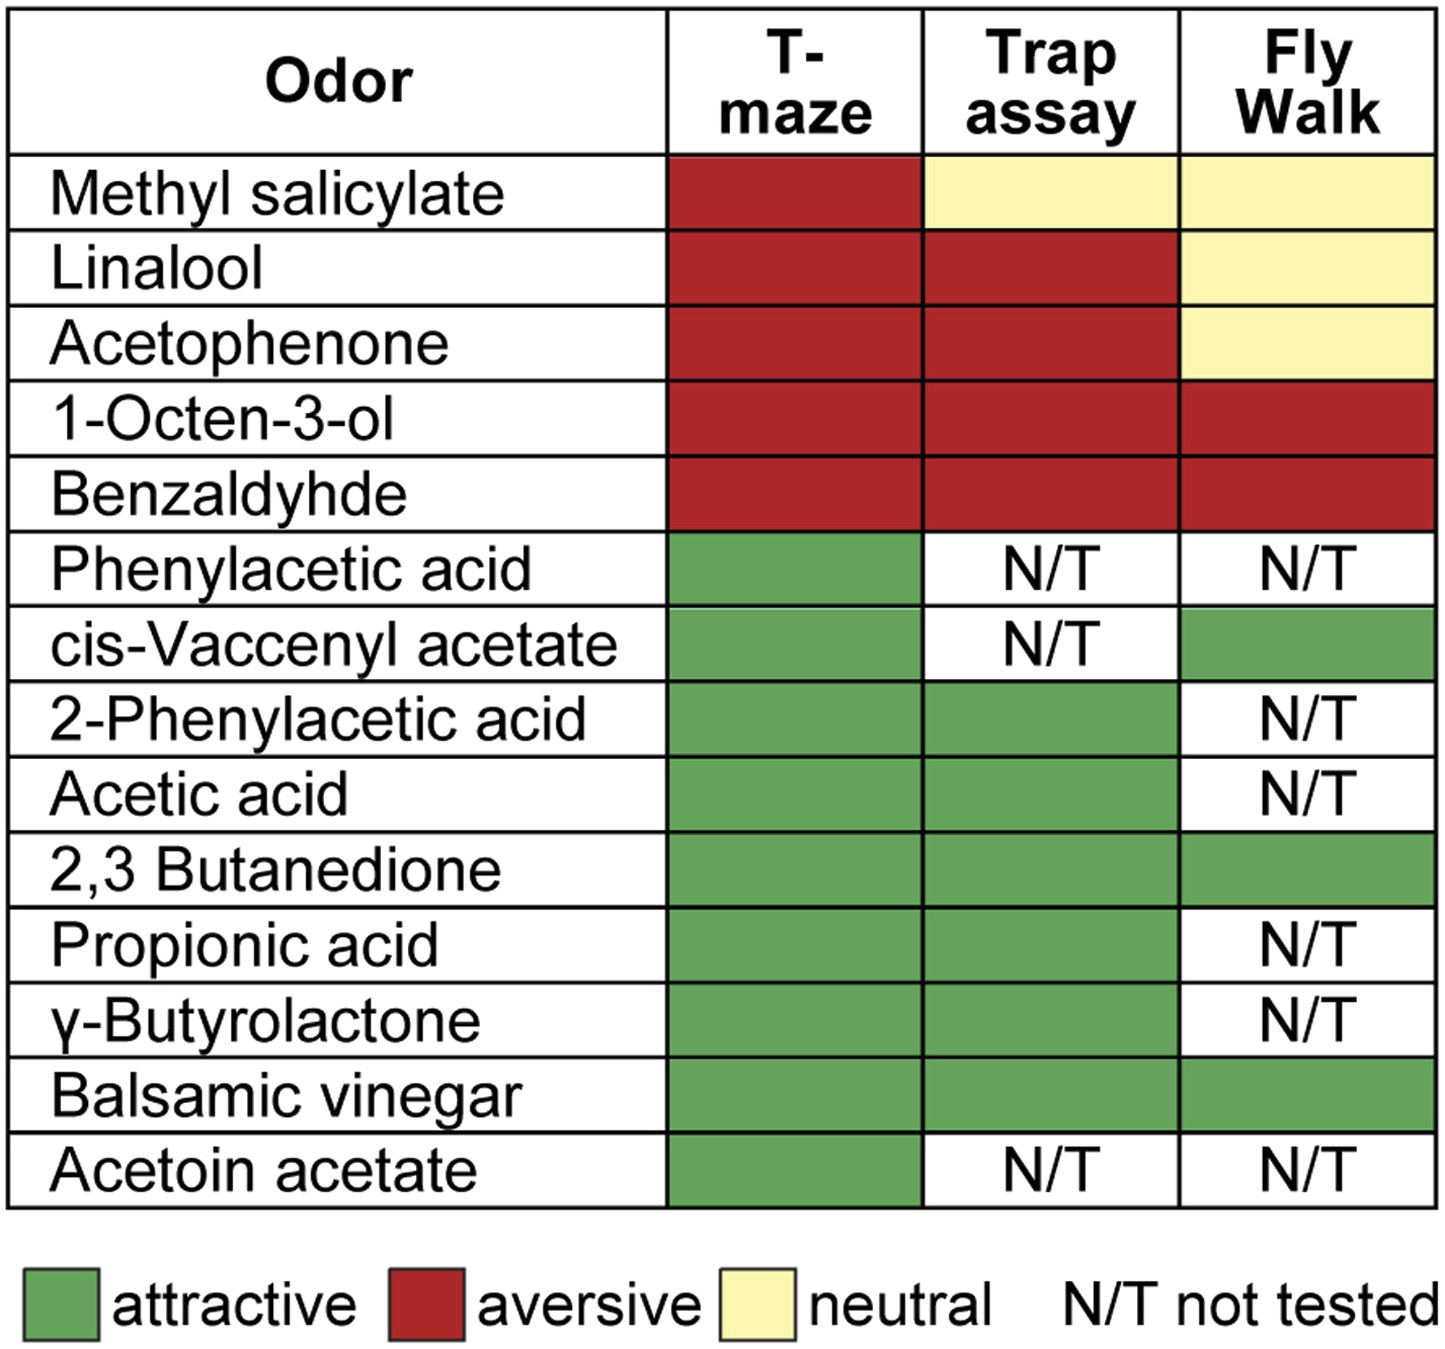 Figures and data in Decoding odor quality and intensity in the ...